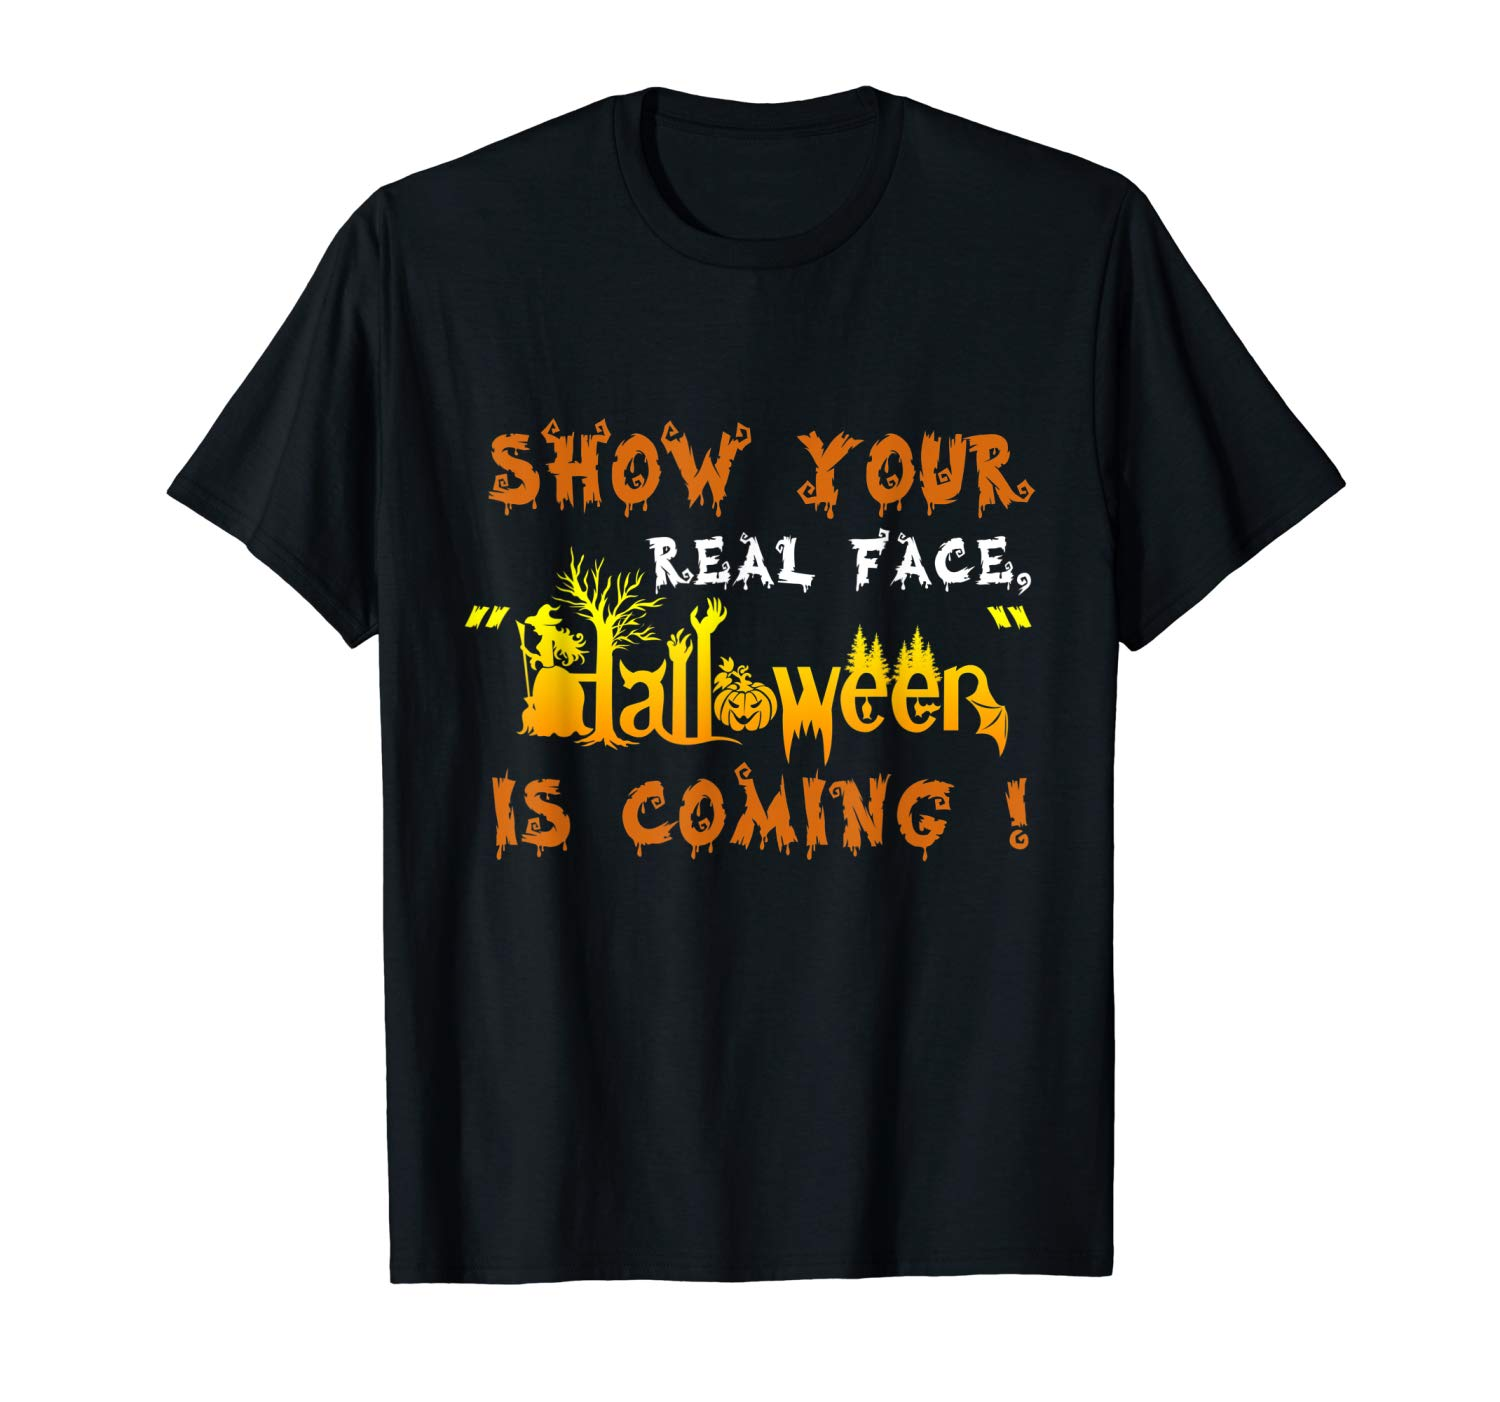 Show Your Real Face Halloween Is Coming Funny Halloween Gift T Shirt